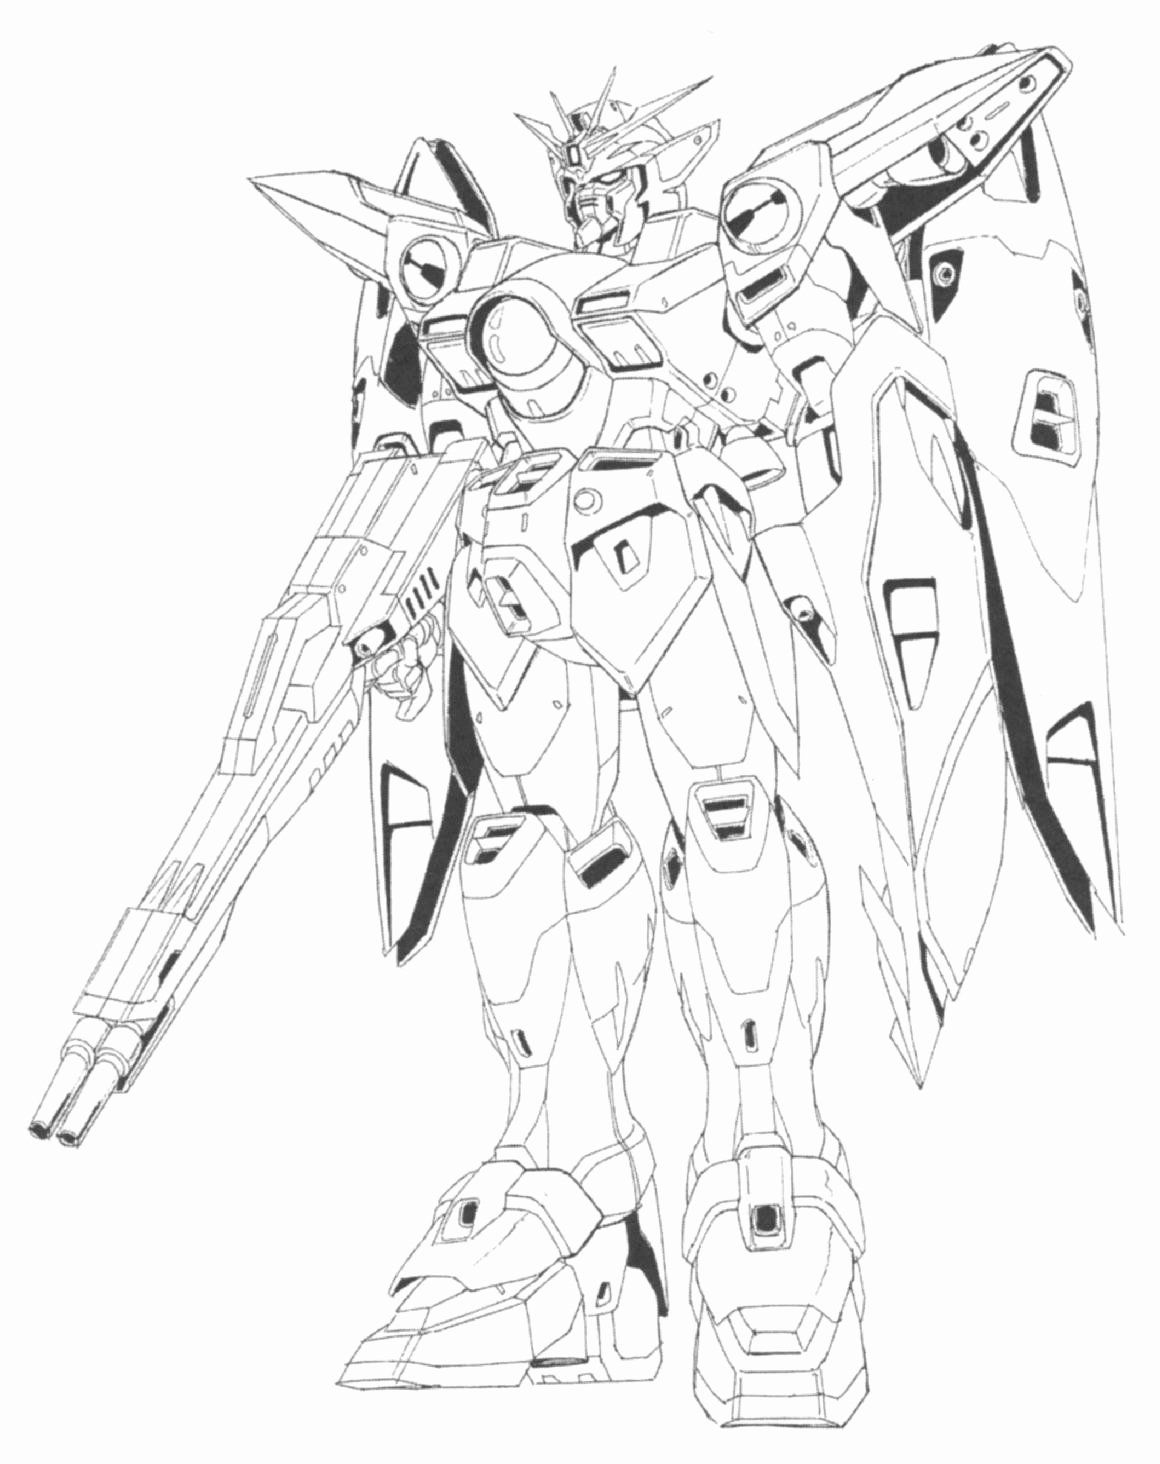 Mobile Suit Gundam 00 Anime Coloring Pages Printable Ideas Of Gundam Coloring Pages Co Mobile Suit Gundam Wing Sailor Moon Coloring Pages Mobile Suit Gundam 00